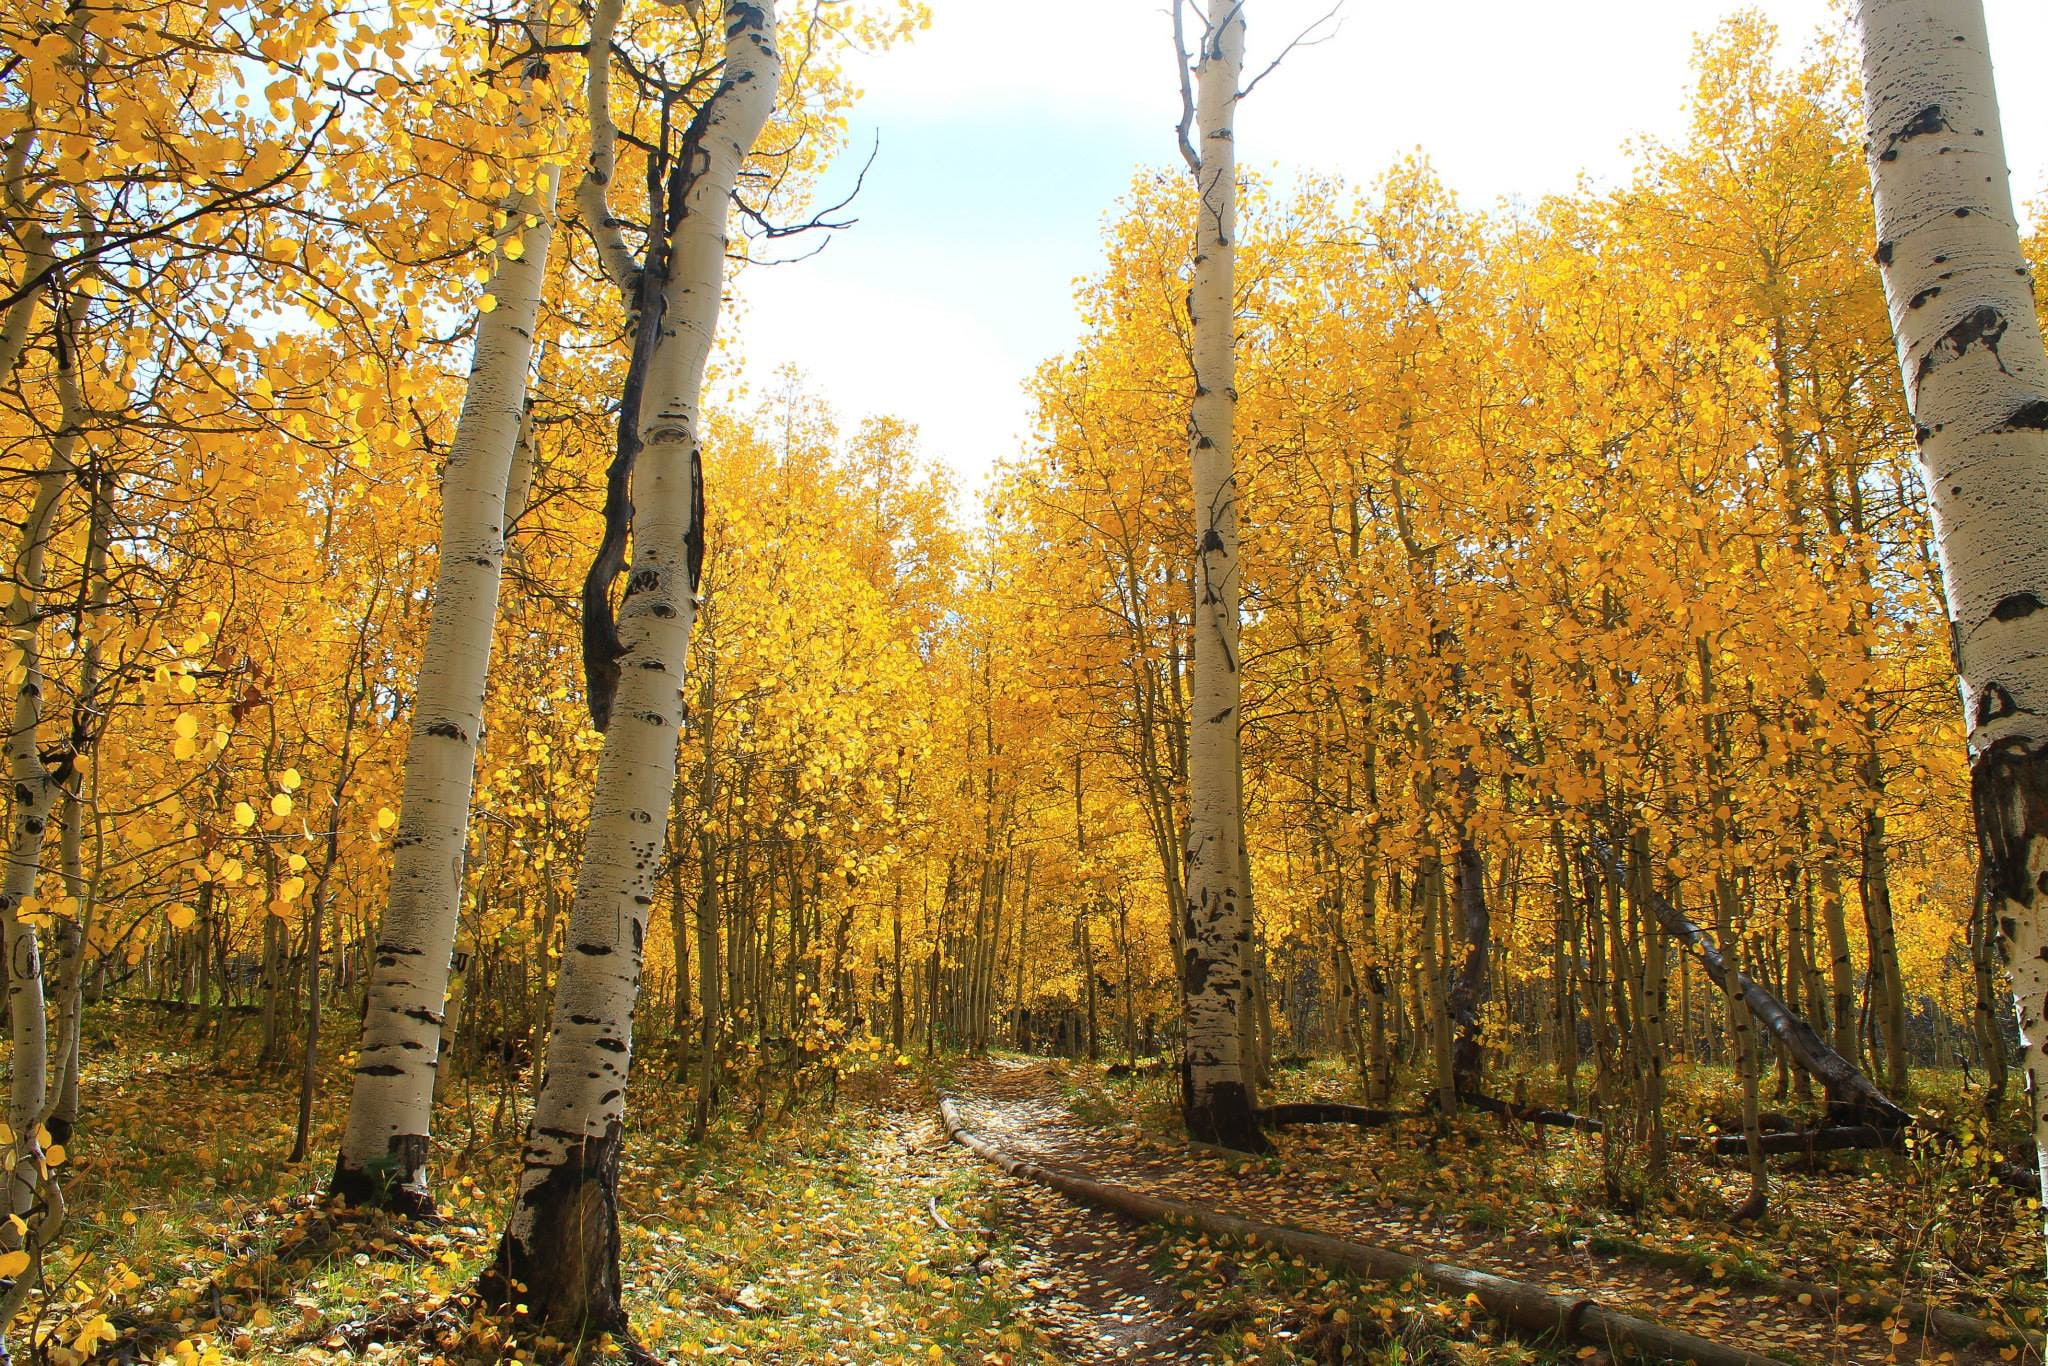 A thick grove of aspen trees.